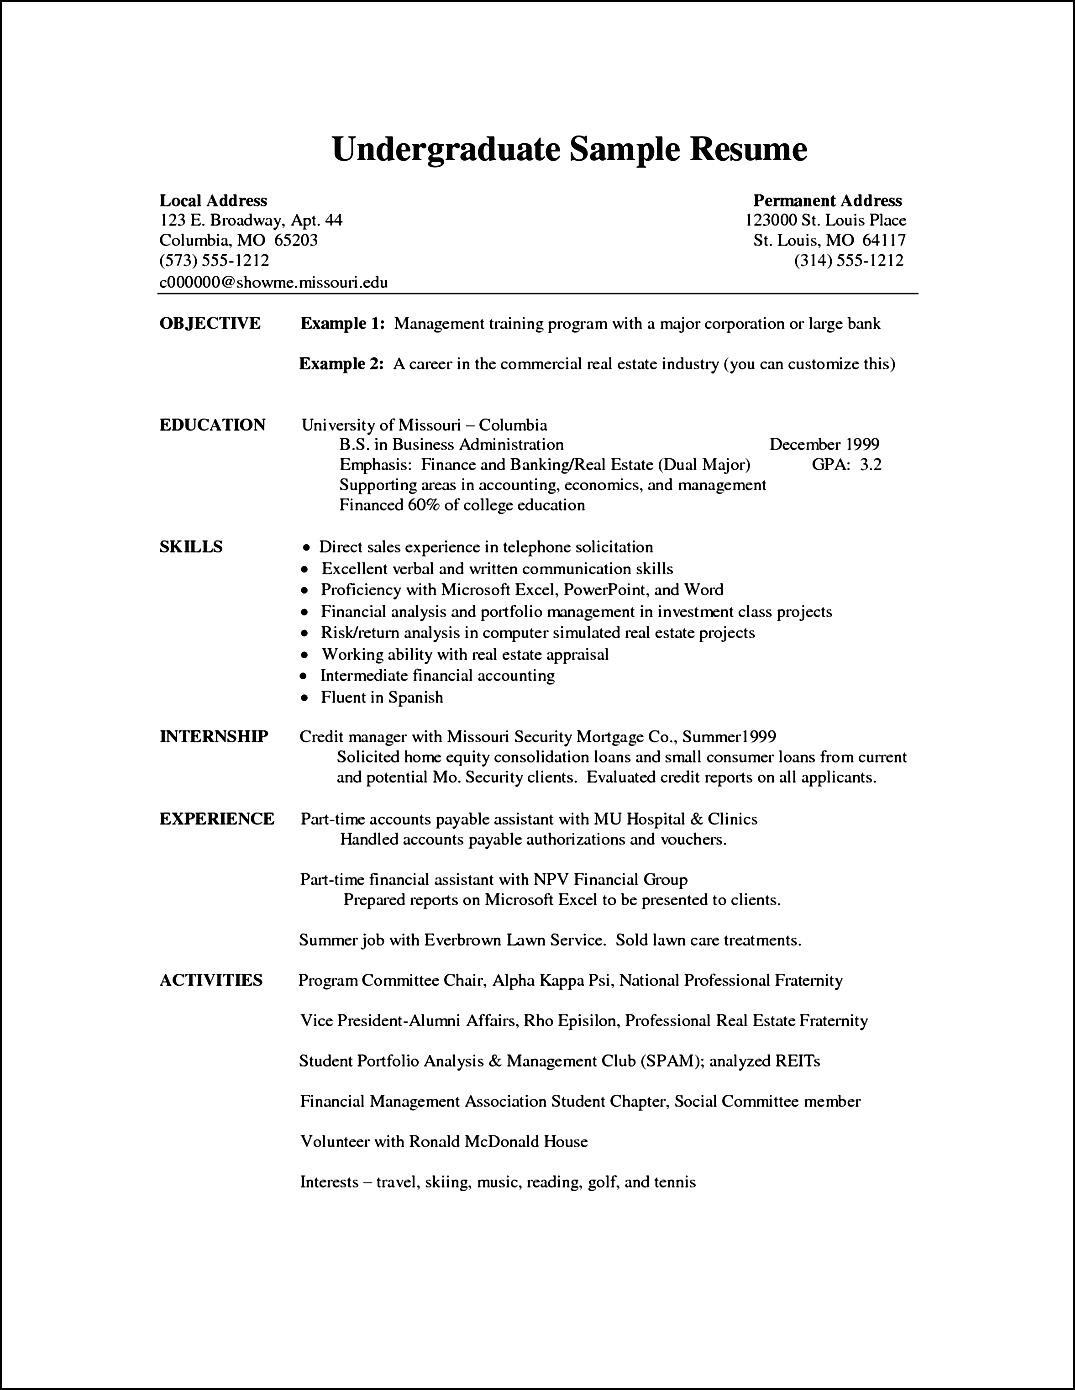 Undergraduate Student Resume Sample Undergraduate Curriculum Vitae Example Free Samples